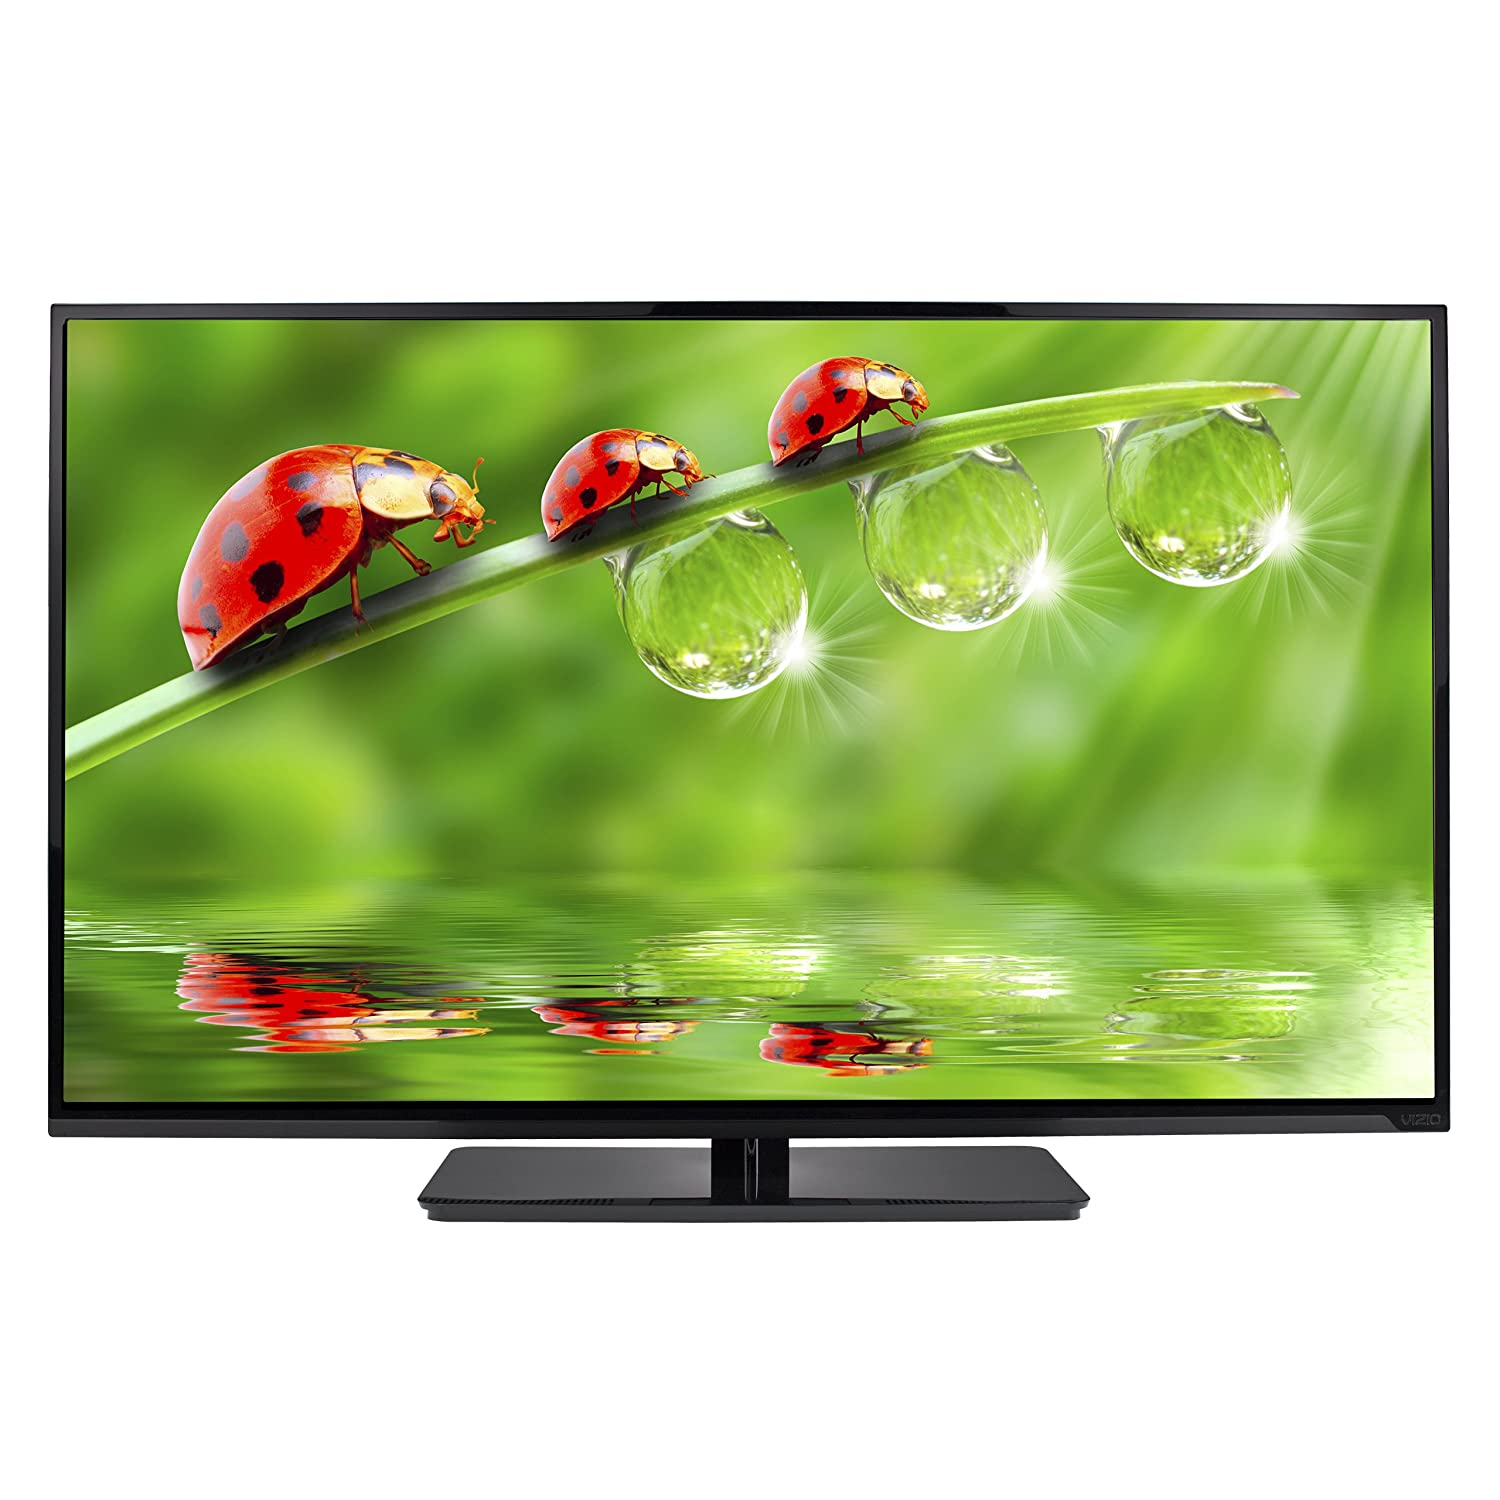 81OsOD%2BoKvL._SL1500_ amazon com vizio e series e470 a0 47 inch 1080p 60hz led lit hdtv 42 Inch Vizio Wall Mount at fashall.co